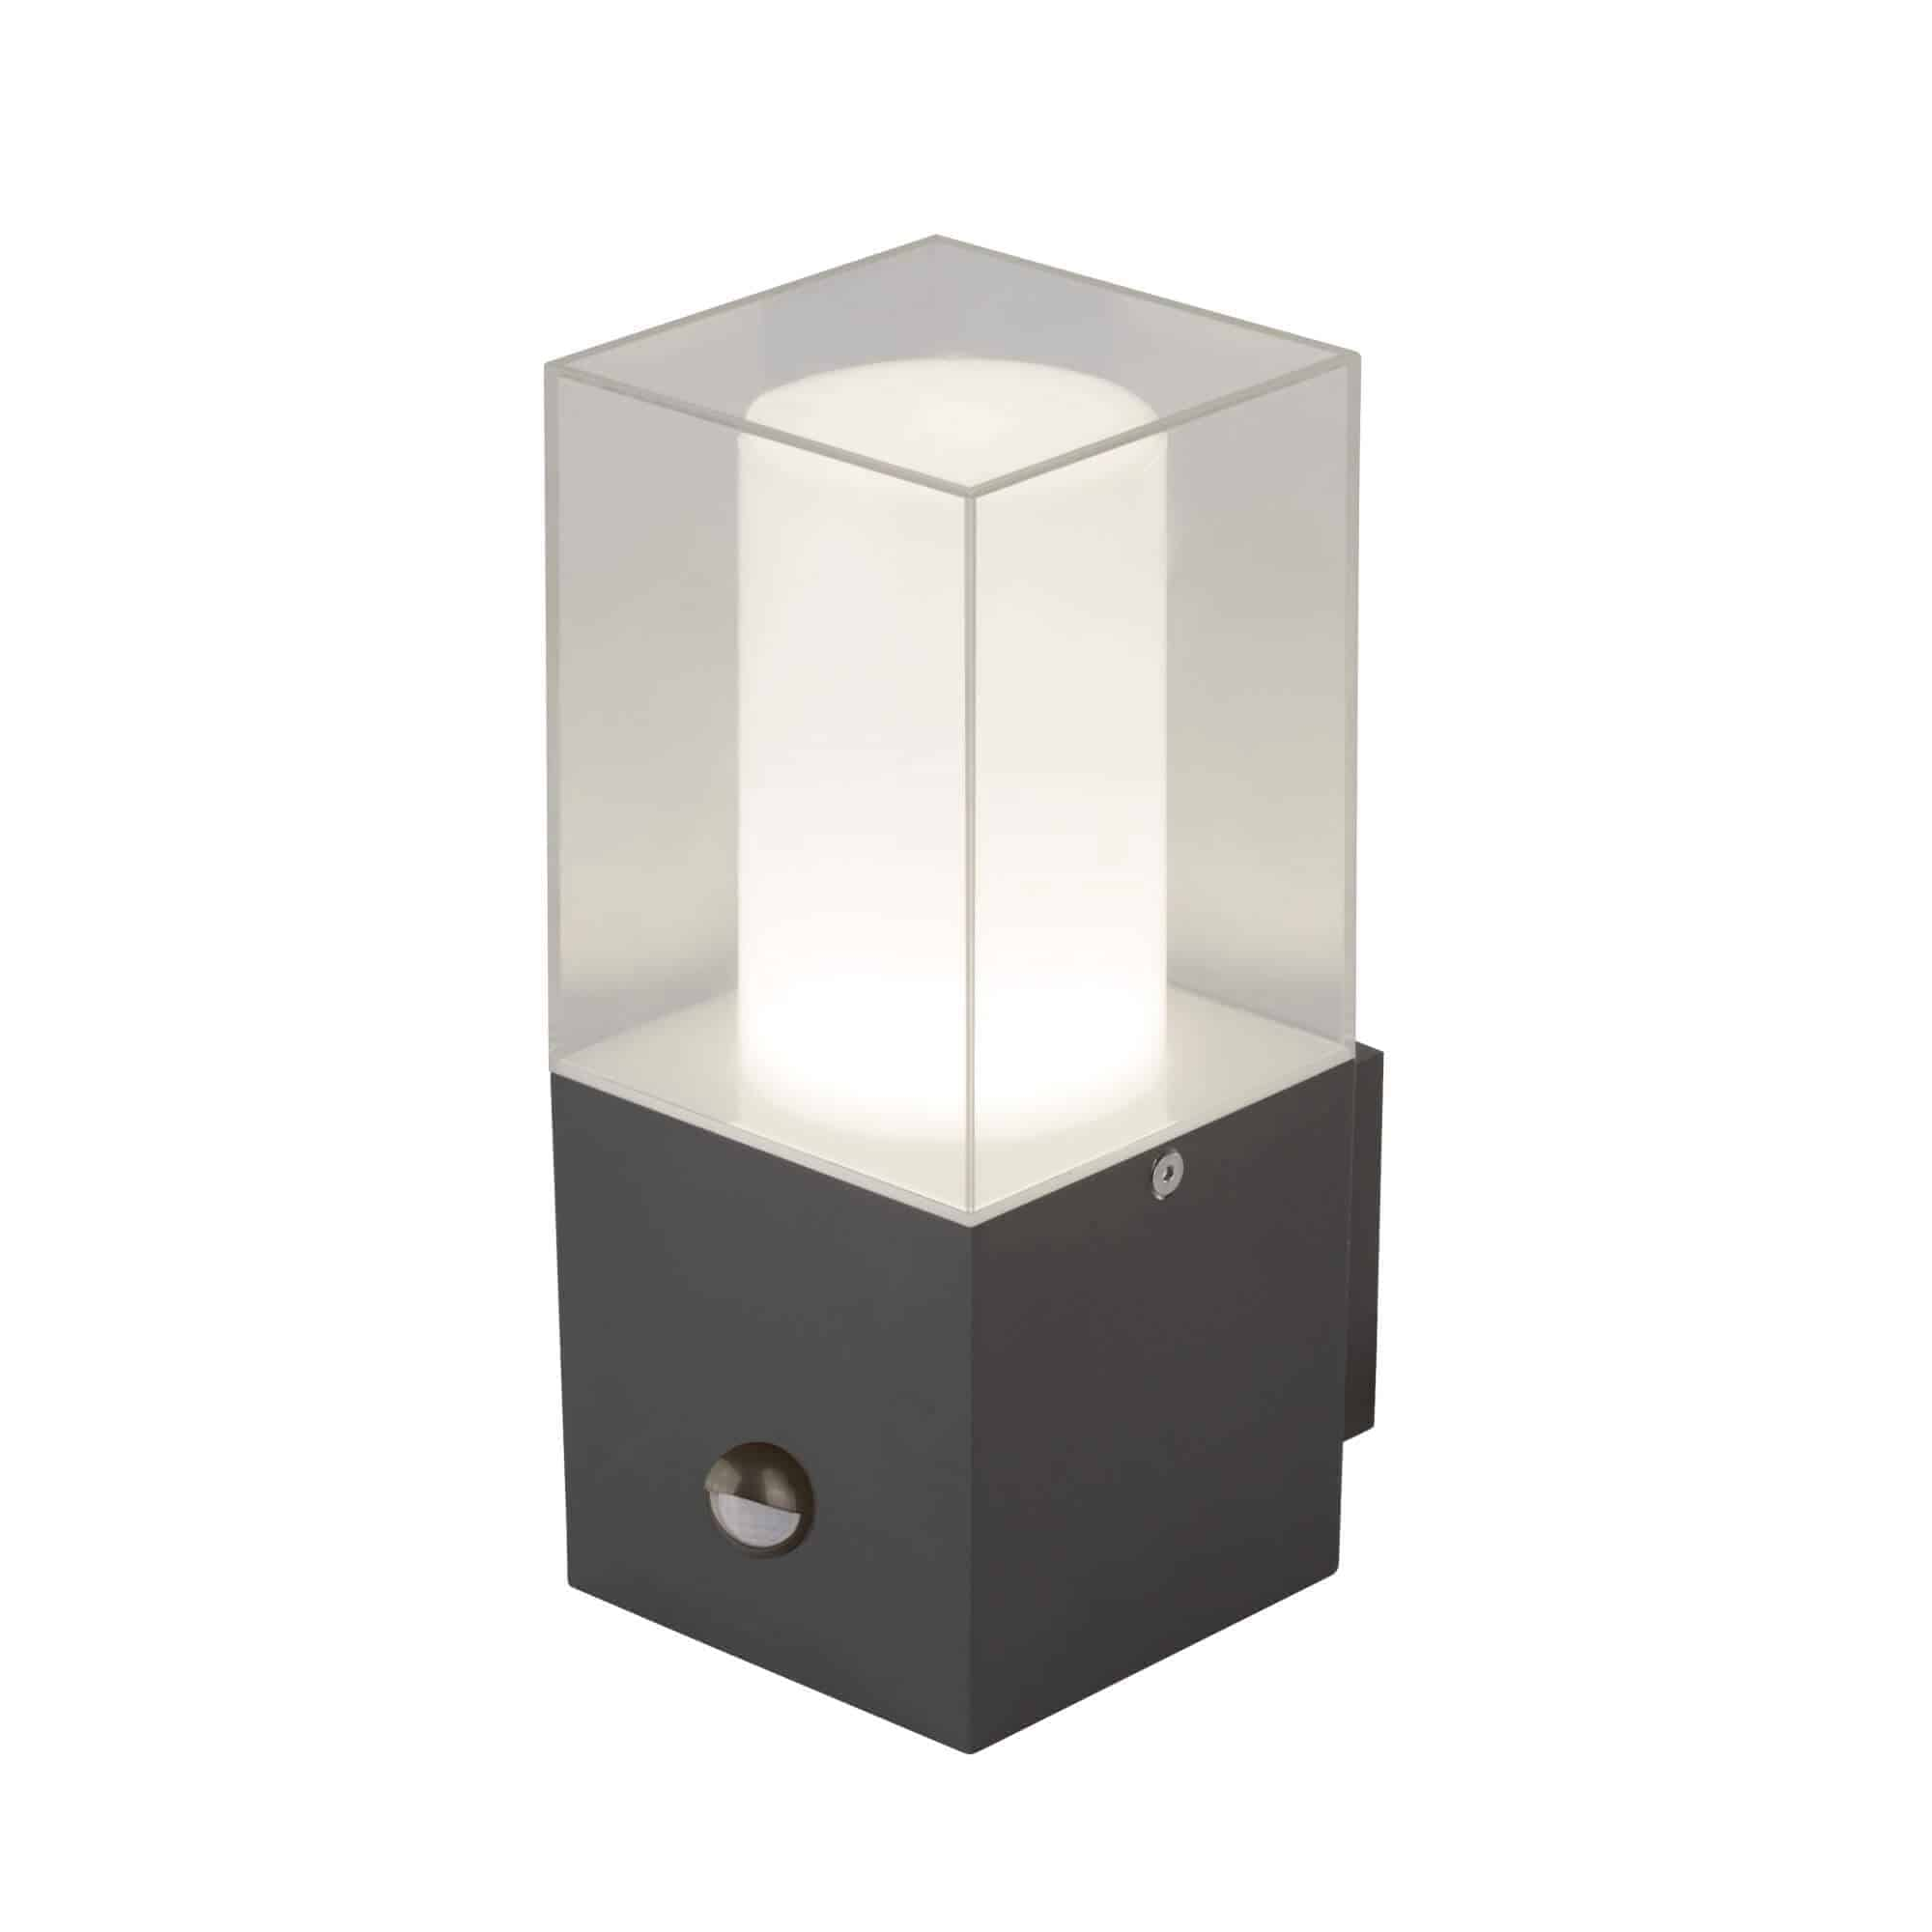 2581GY – Searchlight Outdoor Wall Light With Sensor